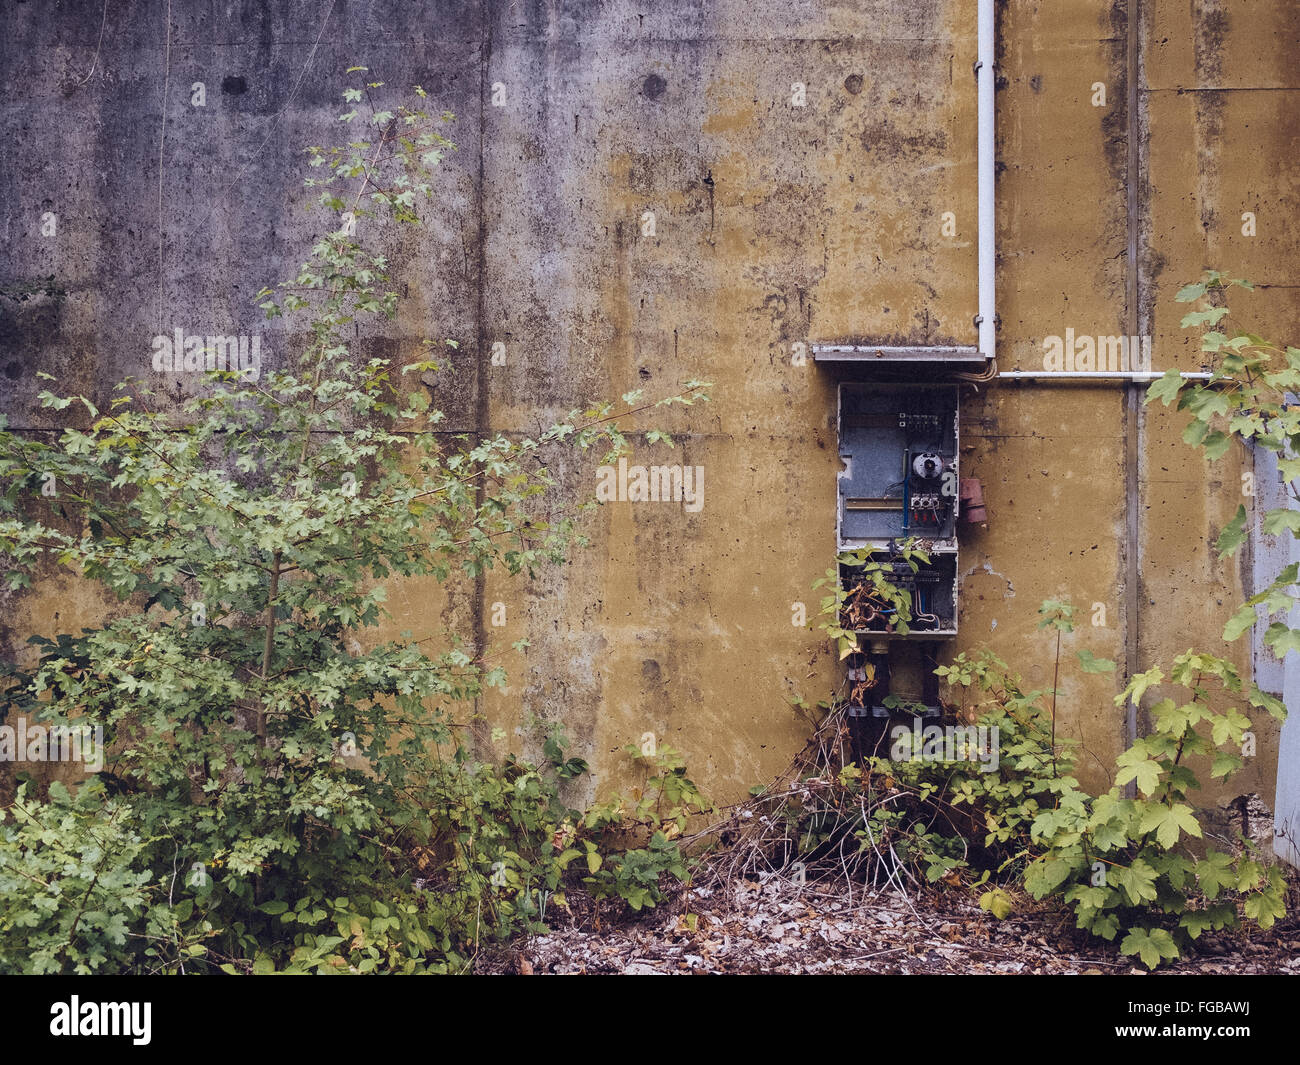 Abandoned Damaged Electric Meter On Wall - Stock Image